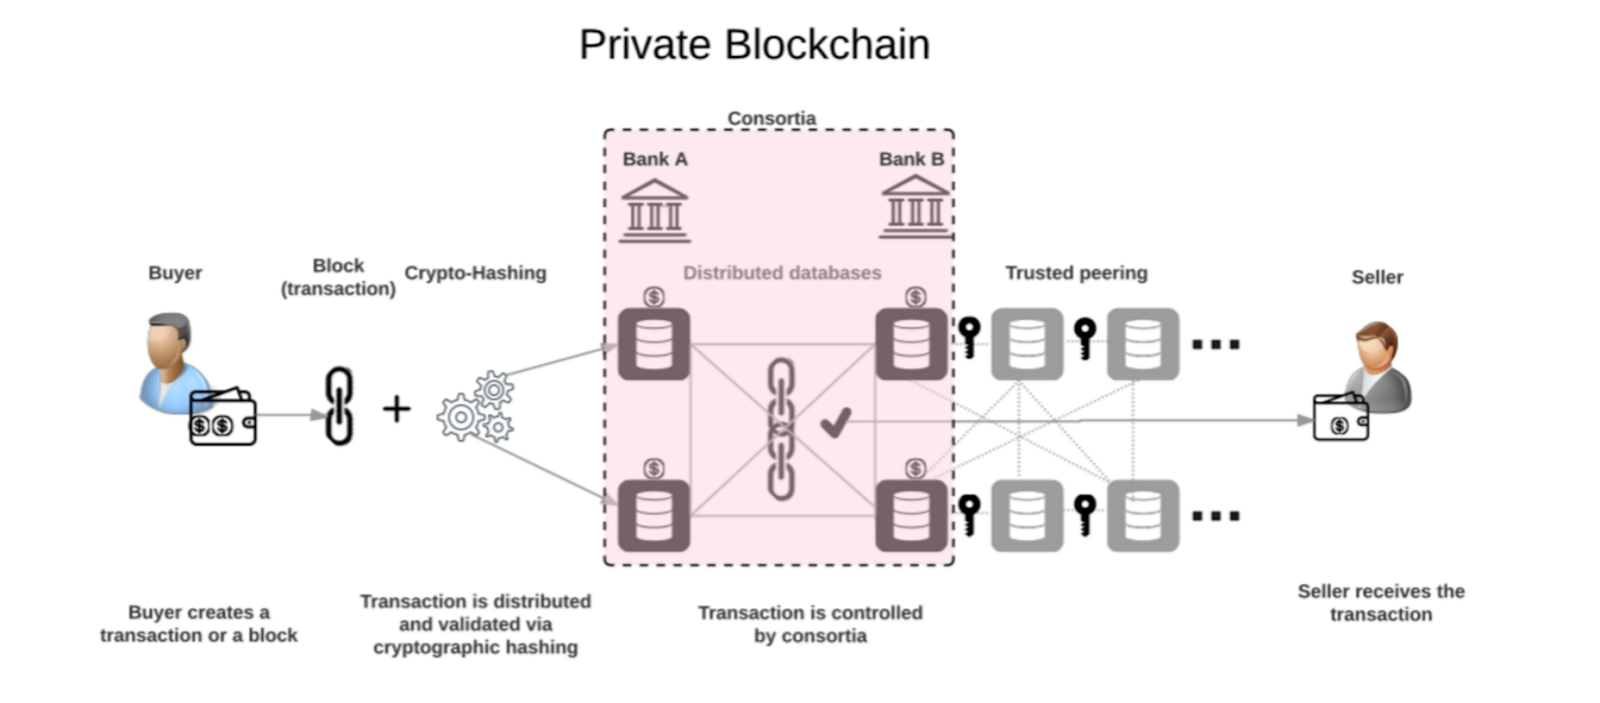 Utilization Of Distributed Technologies For Custom Solutions Public Rules Block Diagram Reduction A Consortium Or Company That Manages Private Blockchain May If Desired Easily Set New Cancel Transactions Correct Balances Etc